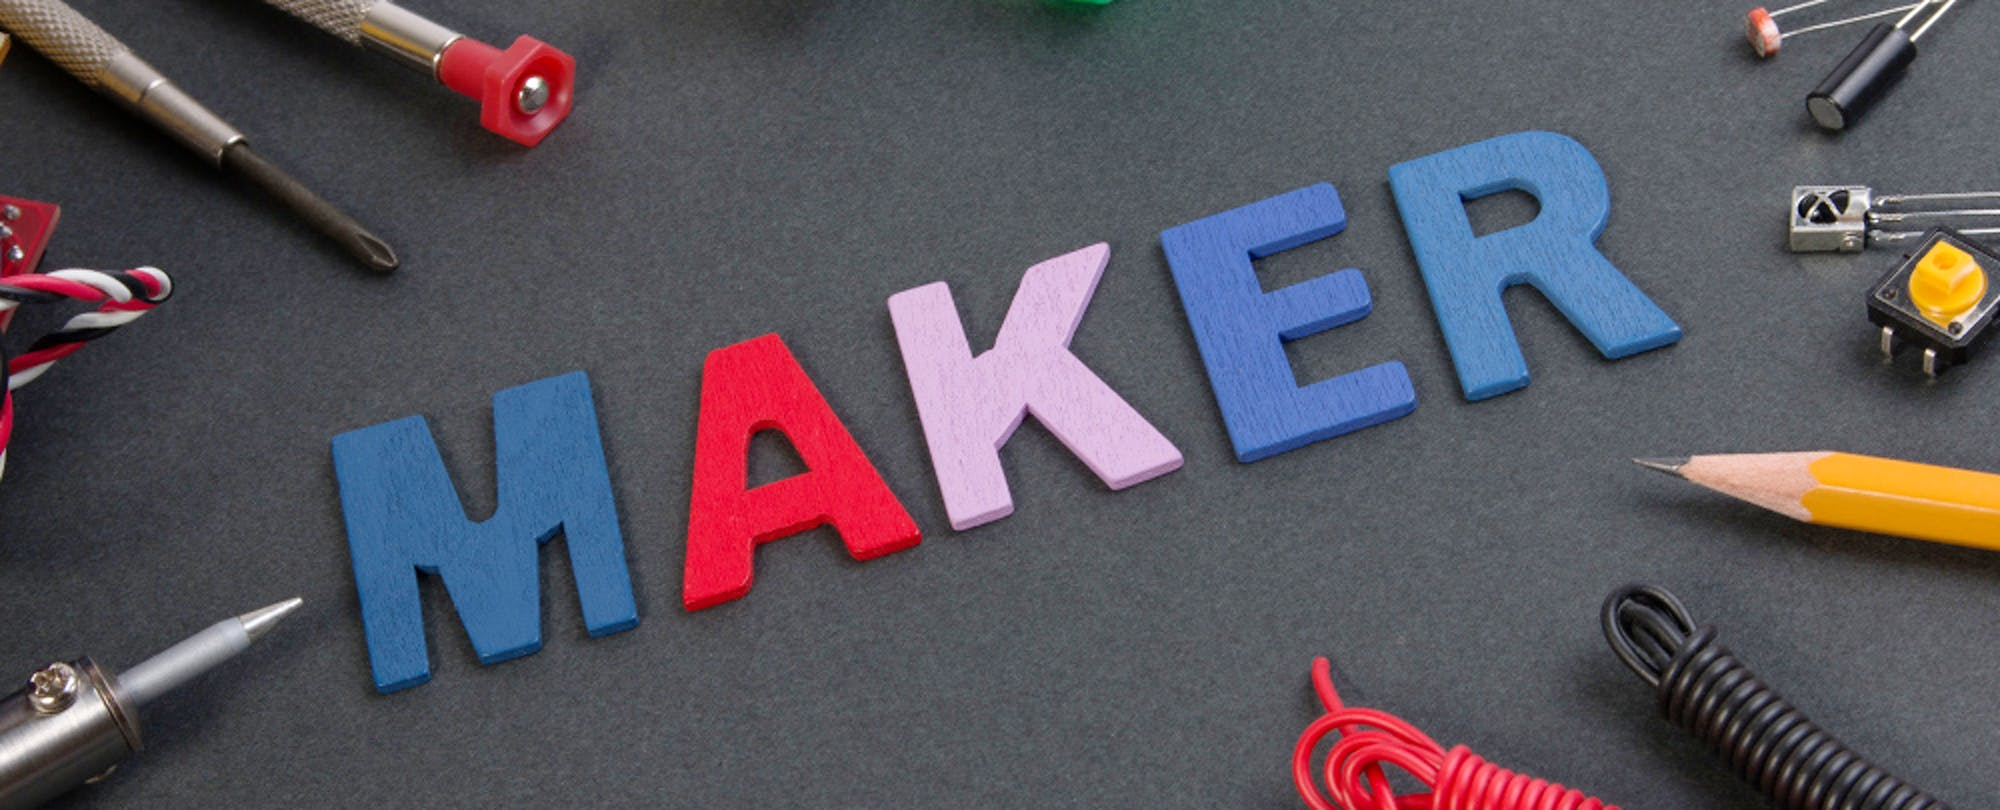 What Should I Buy For My New Makerspace? A Five-Step Framework For Making the Right Purchases